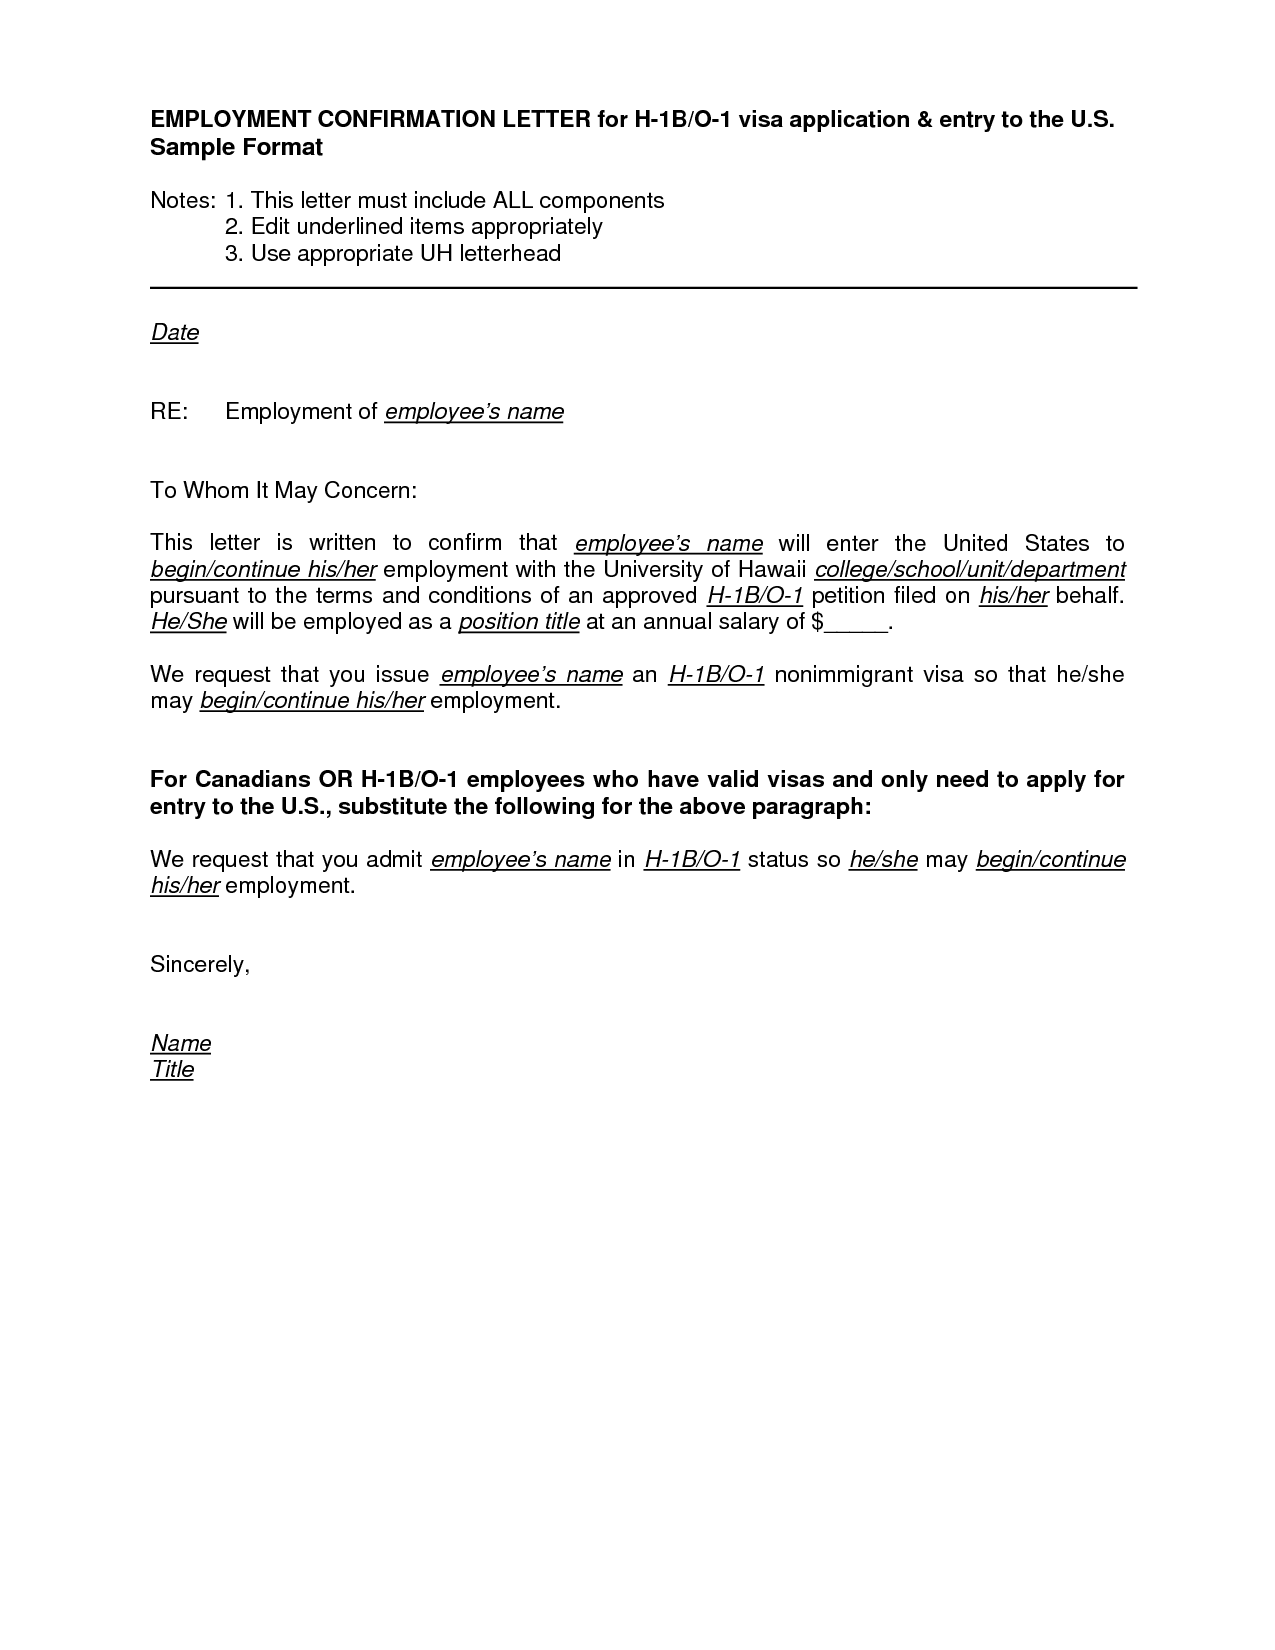 Employment Letter Visa Application Sample Employment Letter For